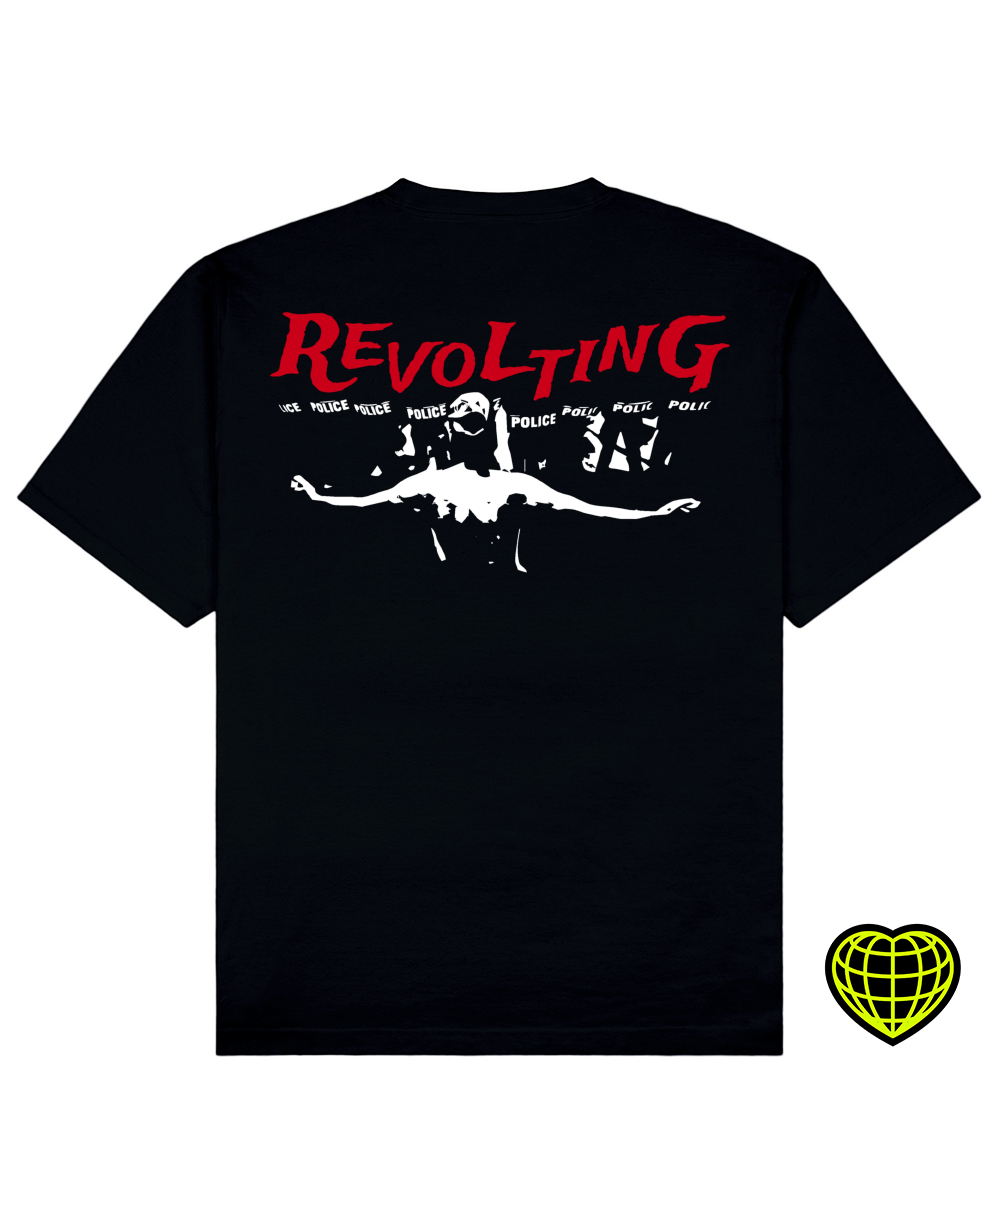 Revolting Print T-shirt in Black - T-Shirts - MIDNIGHT RATS - BRANMA